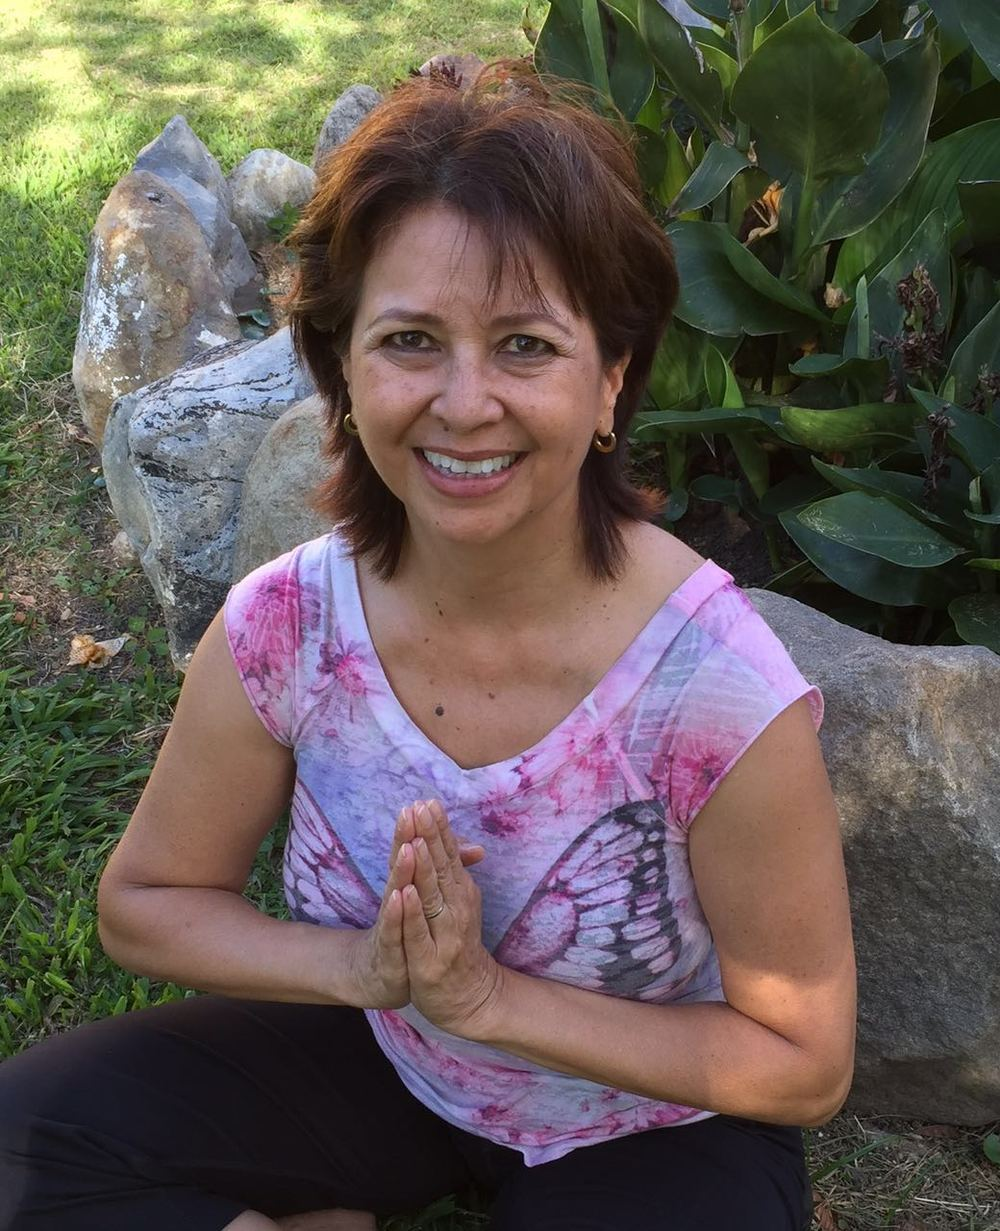 Doris Martinez, E-RYT 200 Certified Therapeutic Yoga Instructor - Doris began her career in health and fitness in 1980.  Over the past 30+ years she has been a Certified Group Fitness Instructor, Pilates Instructor, Master Personal Trainer, and Nutrition Counselor, to name a few.  She started practicing yoga in 1999, received her first Yoga Certification from the American Council on Exercise in 2000, and then went on to complete her Yoga Alliance 200-hour and Therapeutic Yoga Certifications in San Francisco, California. Doris enjoys teaching many different types of yoga classes from Yoga Fundamentals to Vinyasa Flow to Yoga for Kids, but her greatest passion is supporting the healing process of individuals through the gifts of Therapeutic Yoga. Through the teachings of Therapeutic Yoga she hopes to help those recovering from, or living with, injury or illness find more ease in their body, peace of mind, and greater levels of health and well-being.